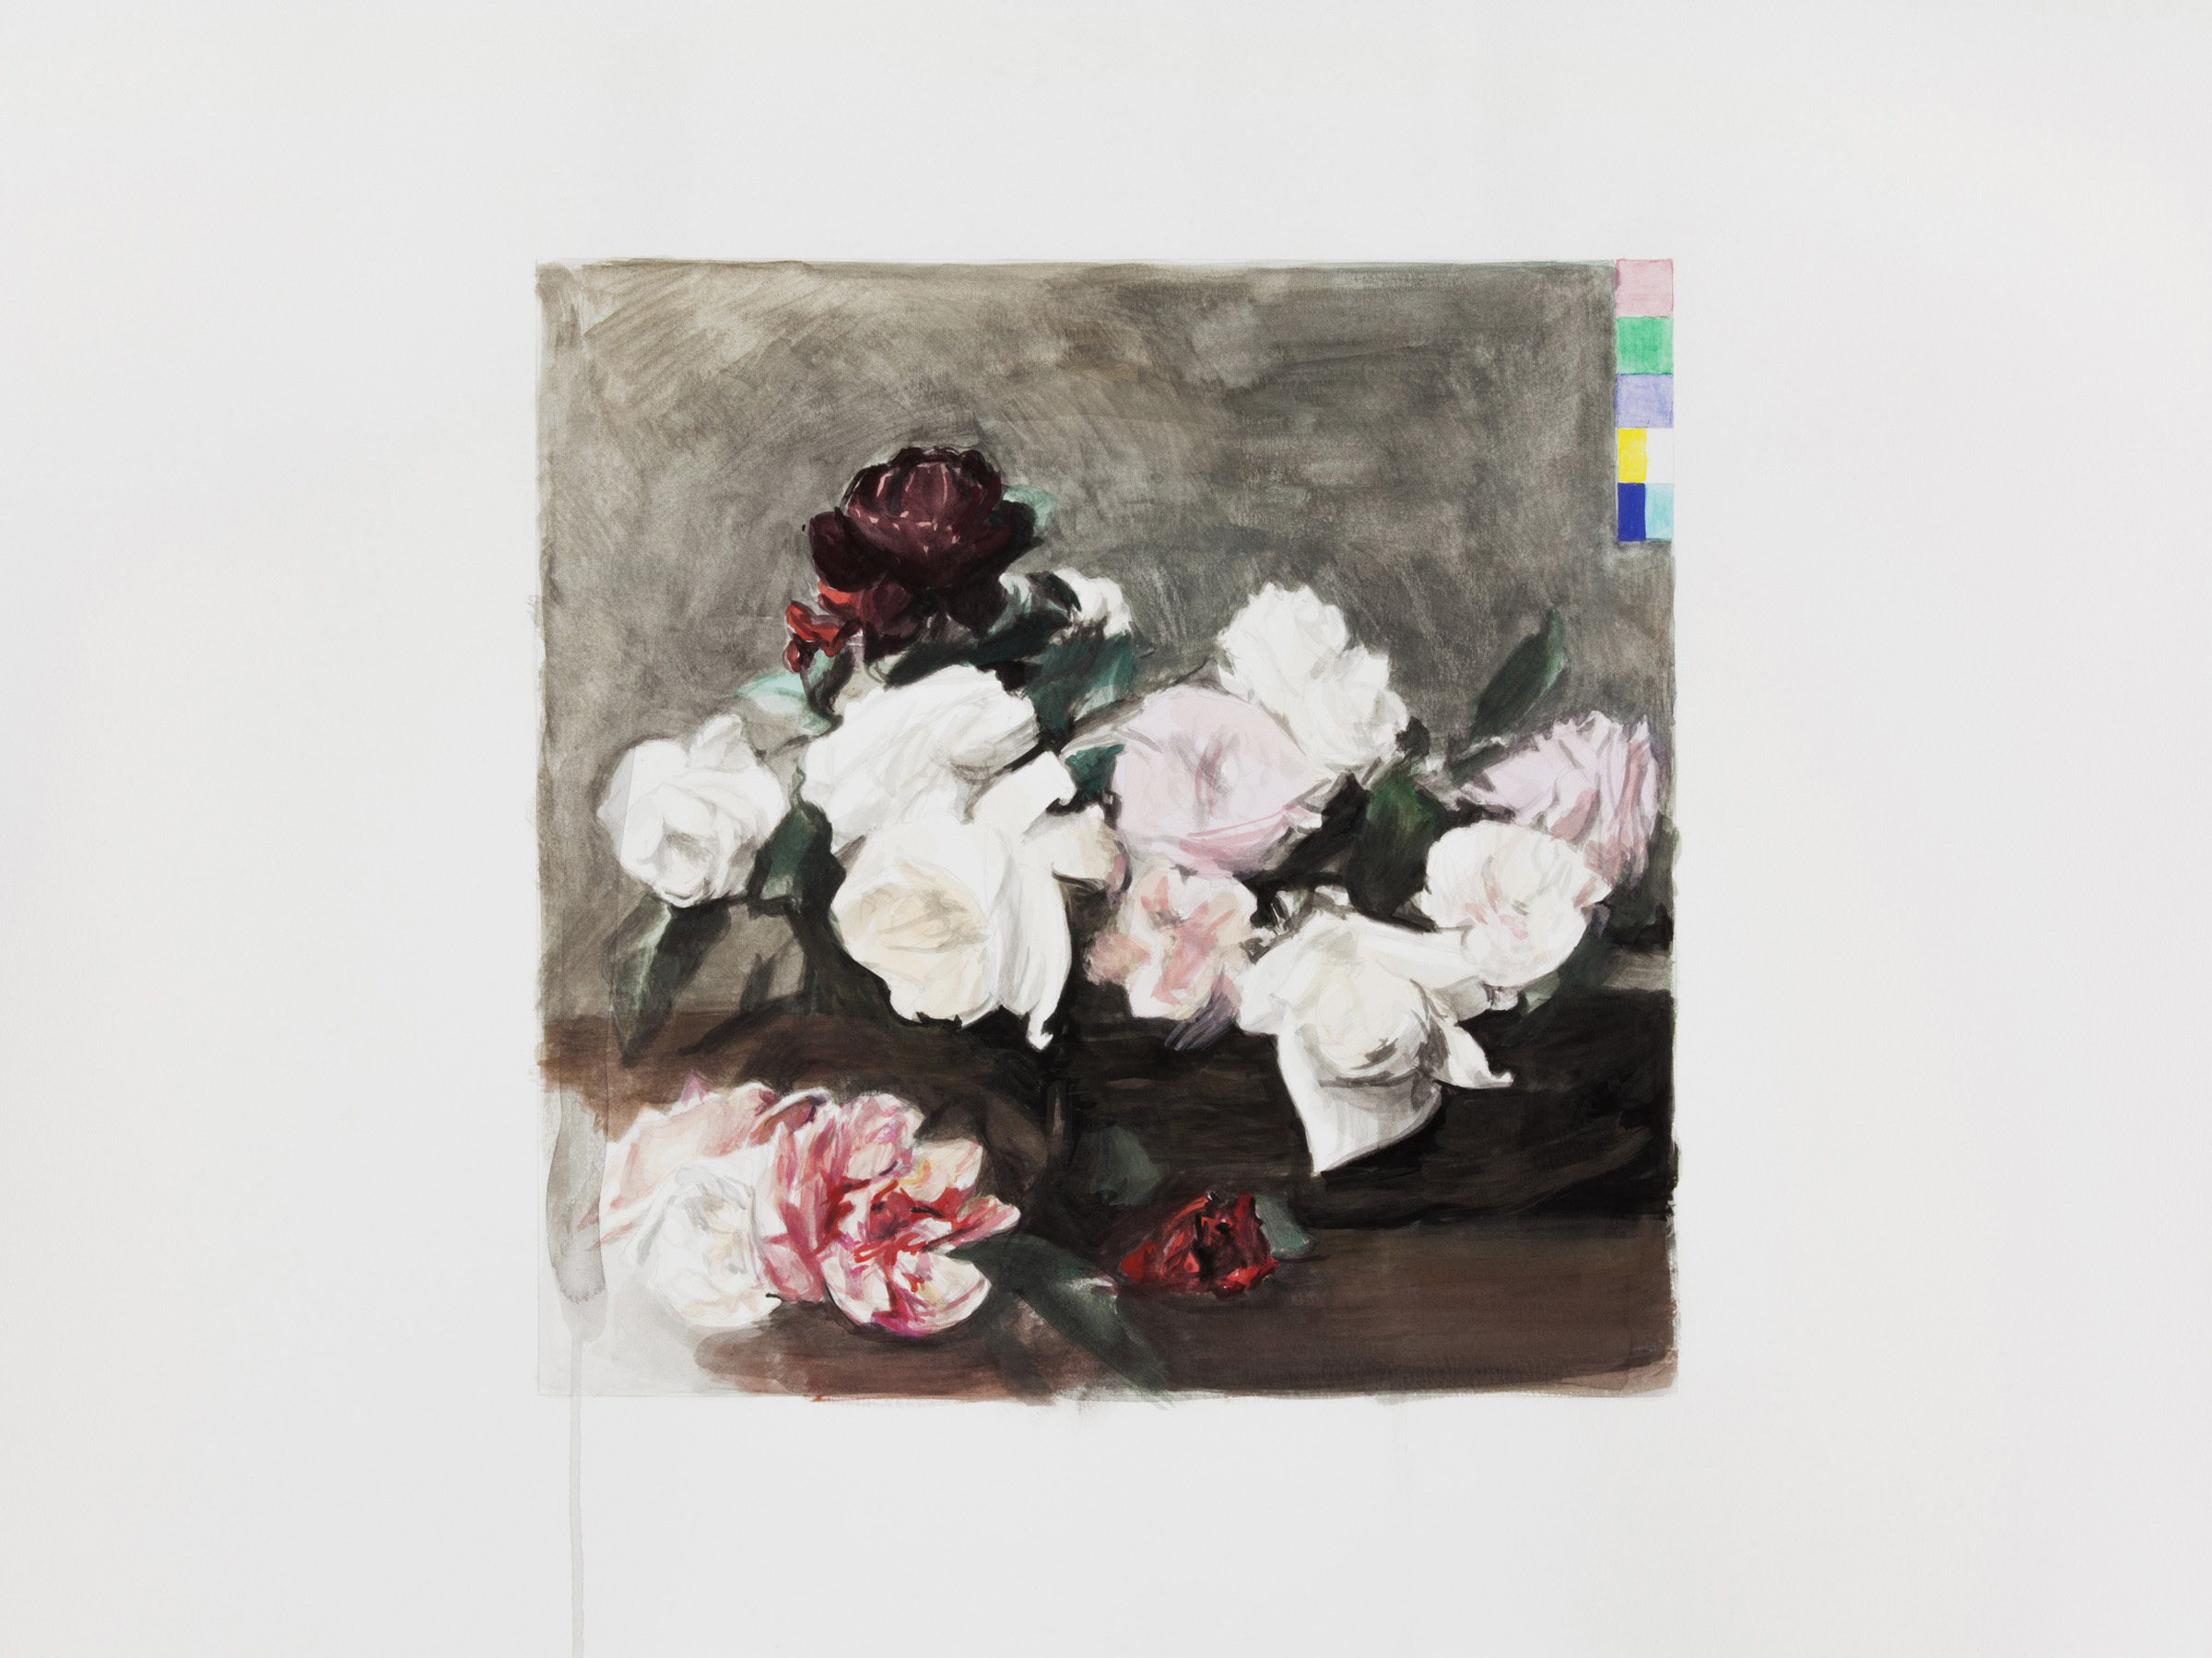 Power Corruption and Lies #1